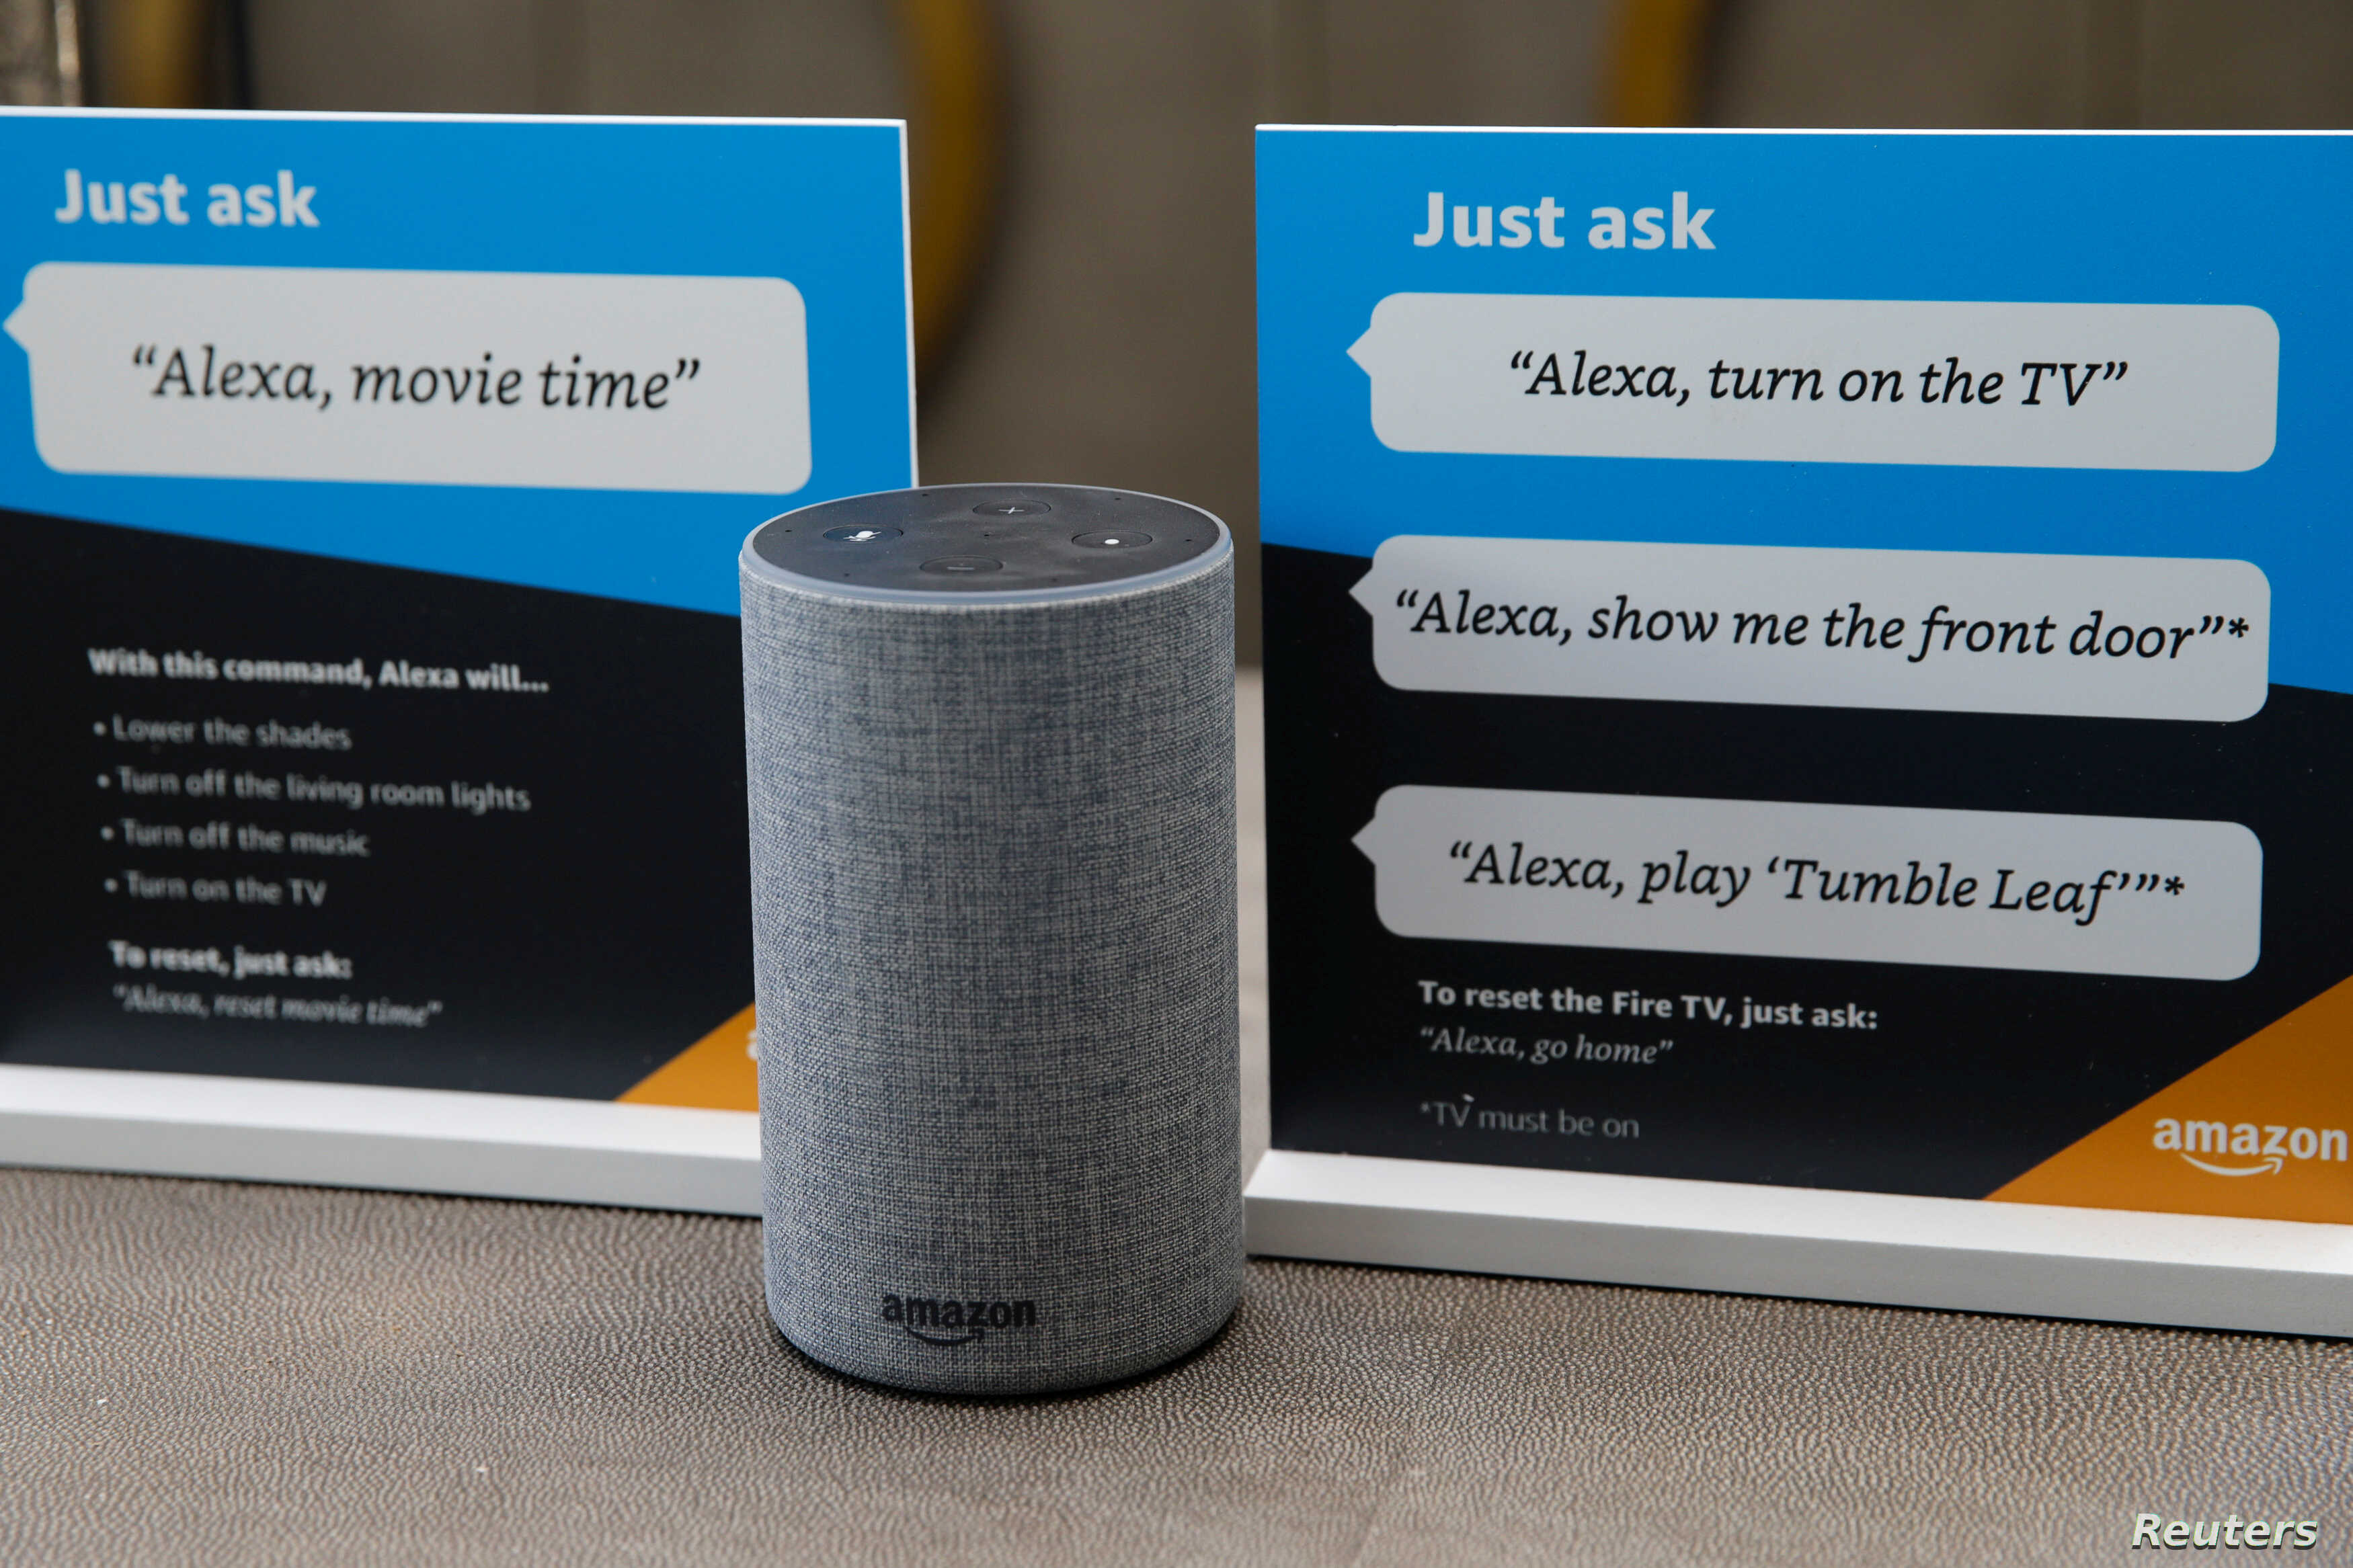 FILE - Prompts on how to use Amazon's Alexa personal assistant are seen in an Amazon 'experience center' in Vallejo, California, U.S., May 8, 2018.